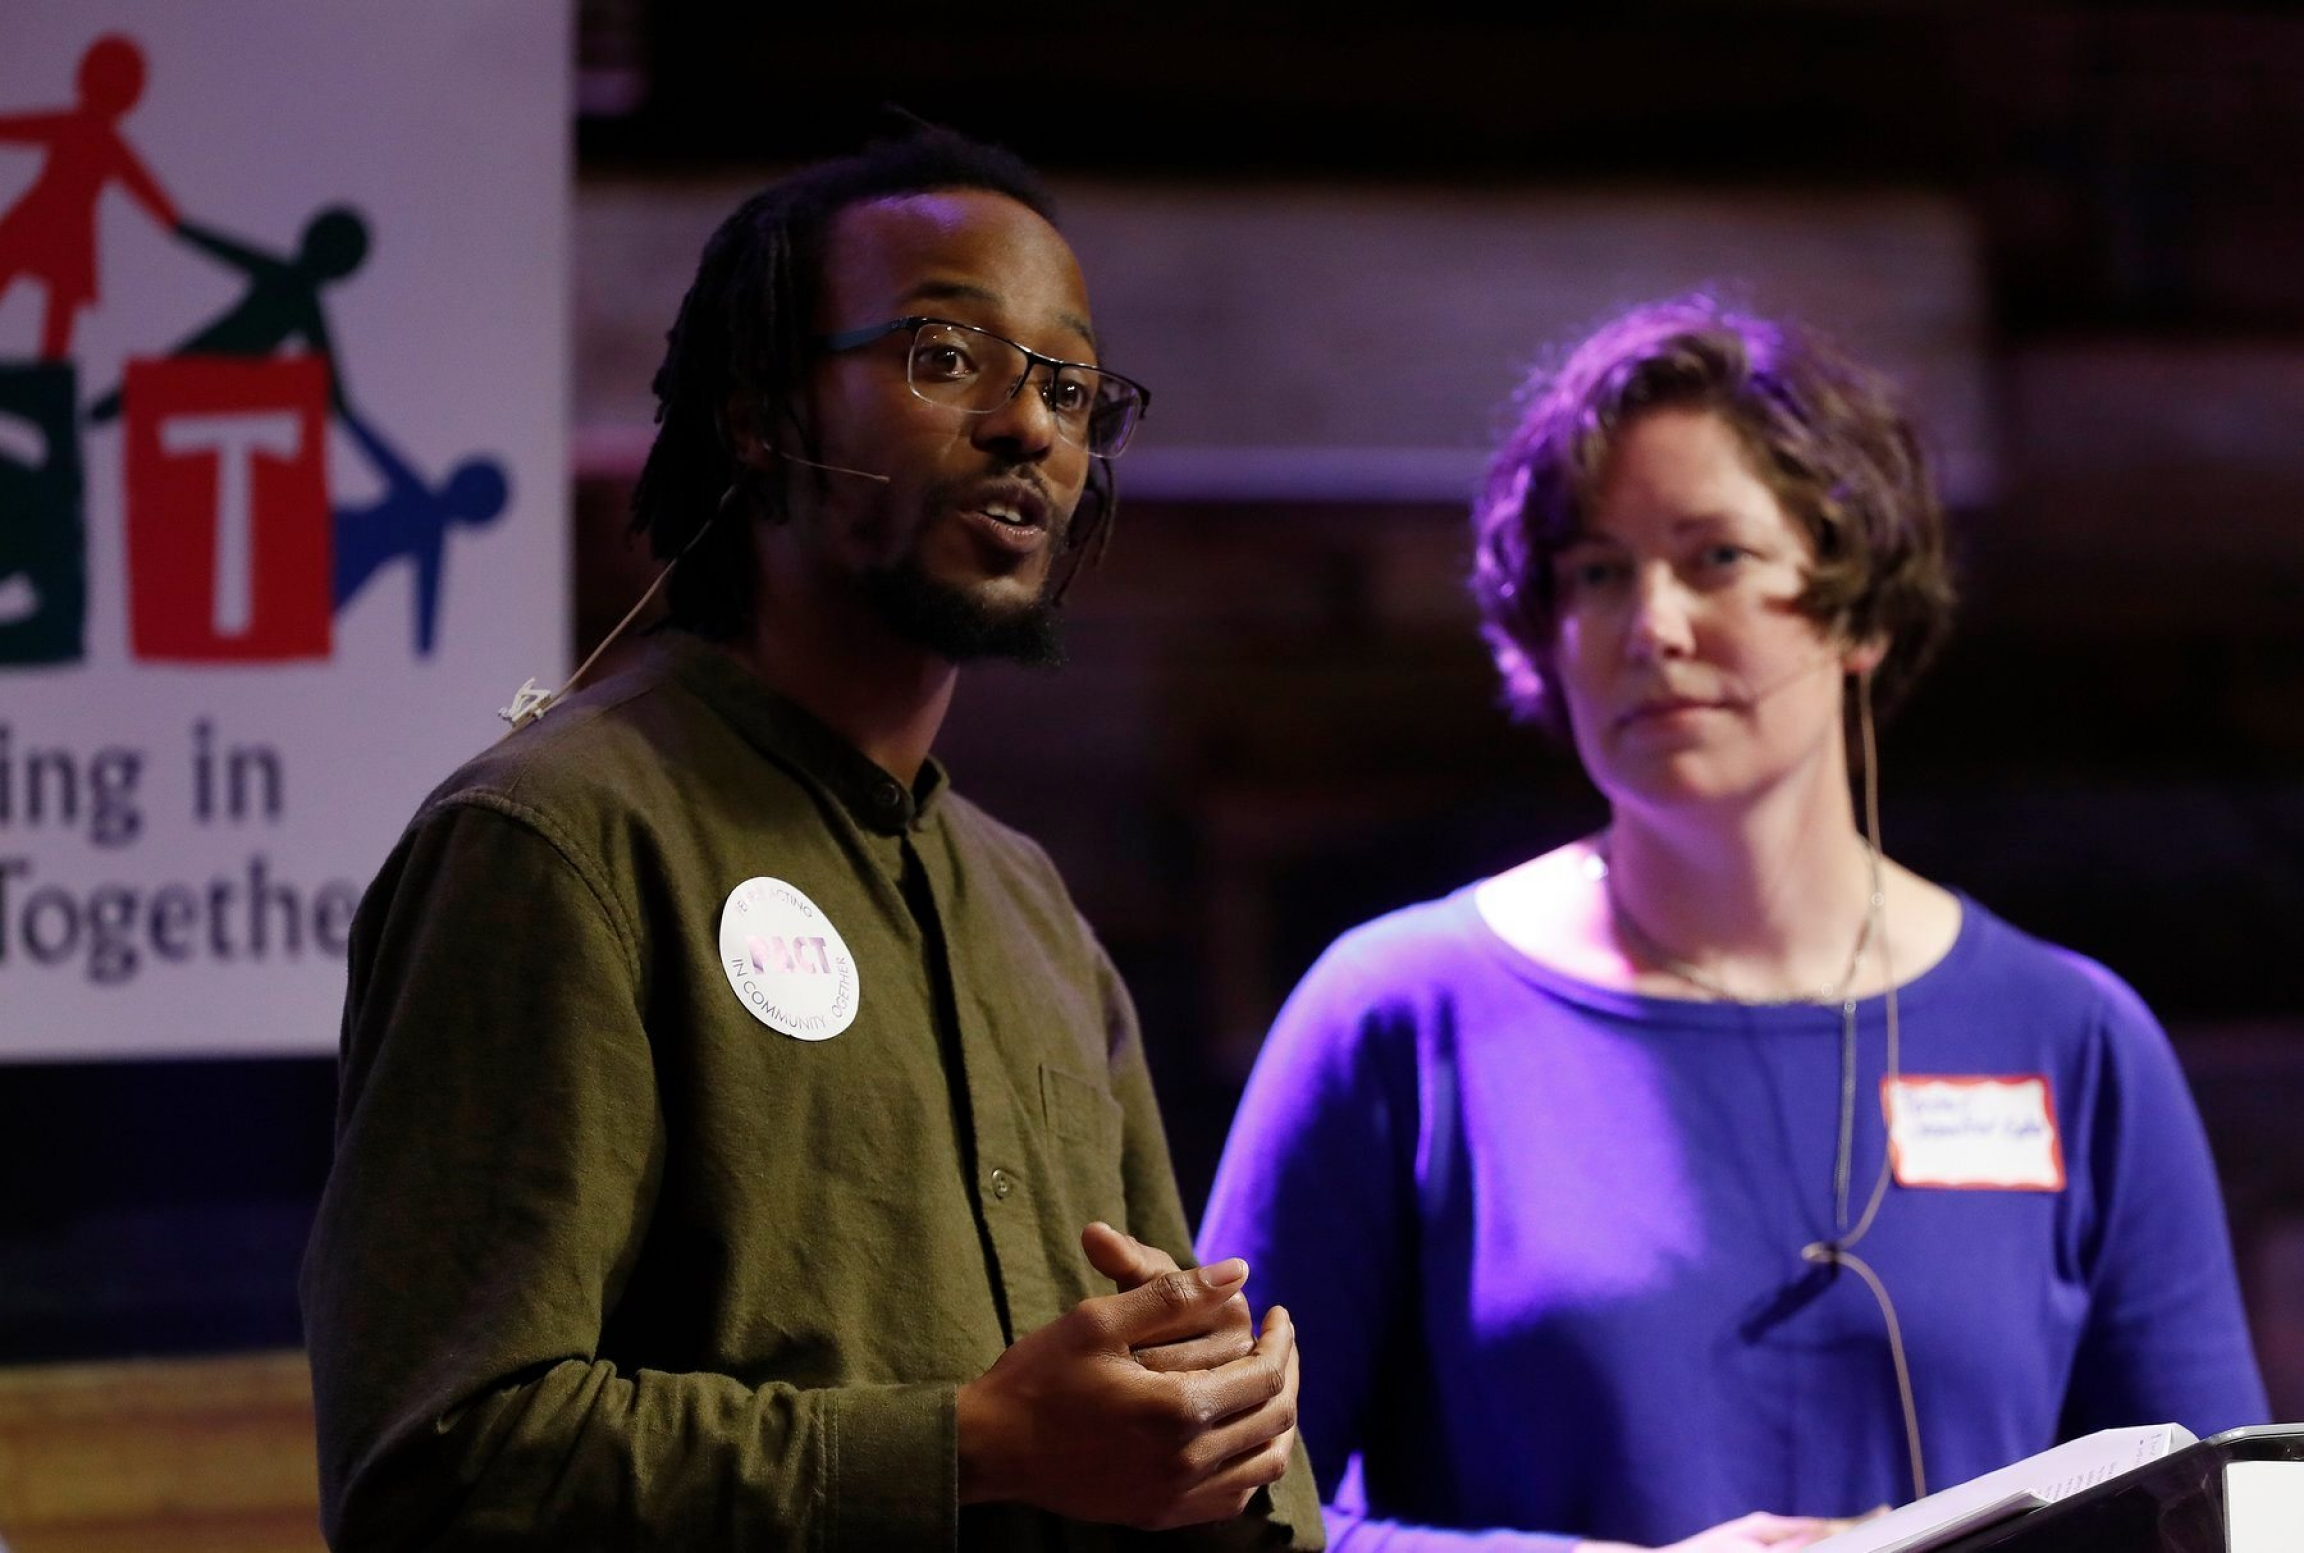 A Black, male community organizer wearing a green shirt speaks next to a white woman wearing a purple shirt at a meeting of People Acting in Community Together in San Jose, California.